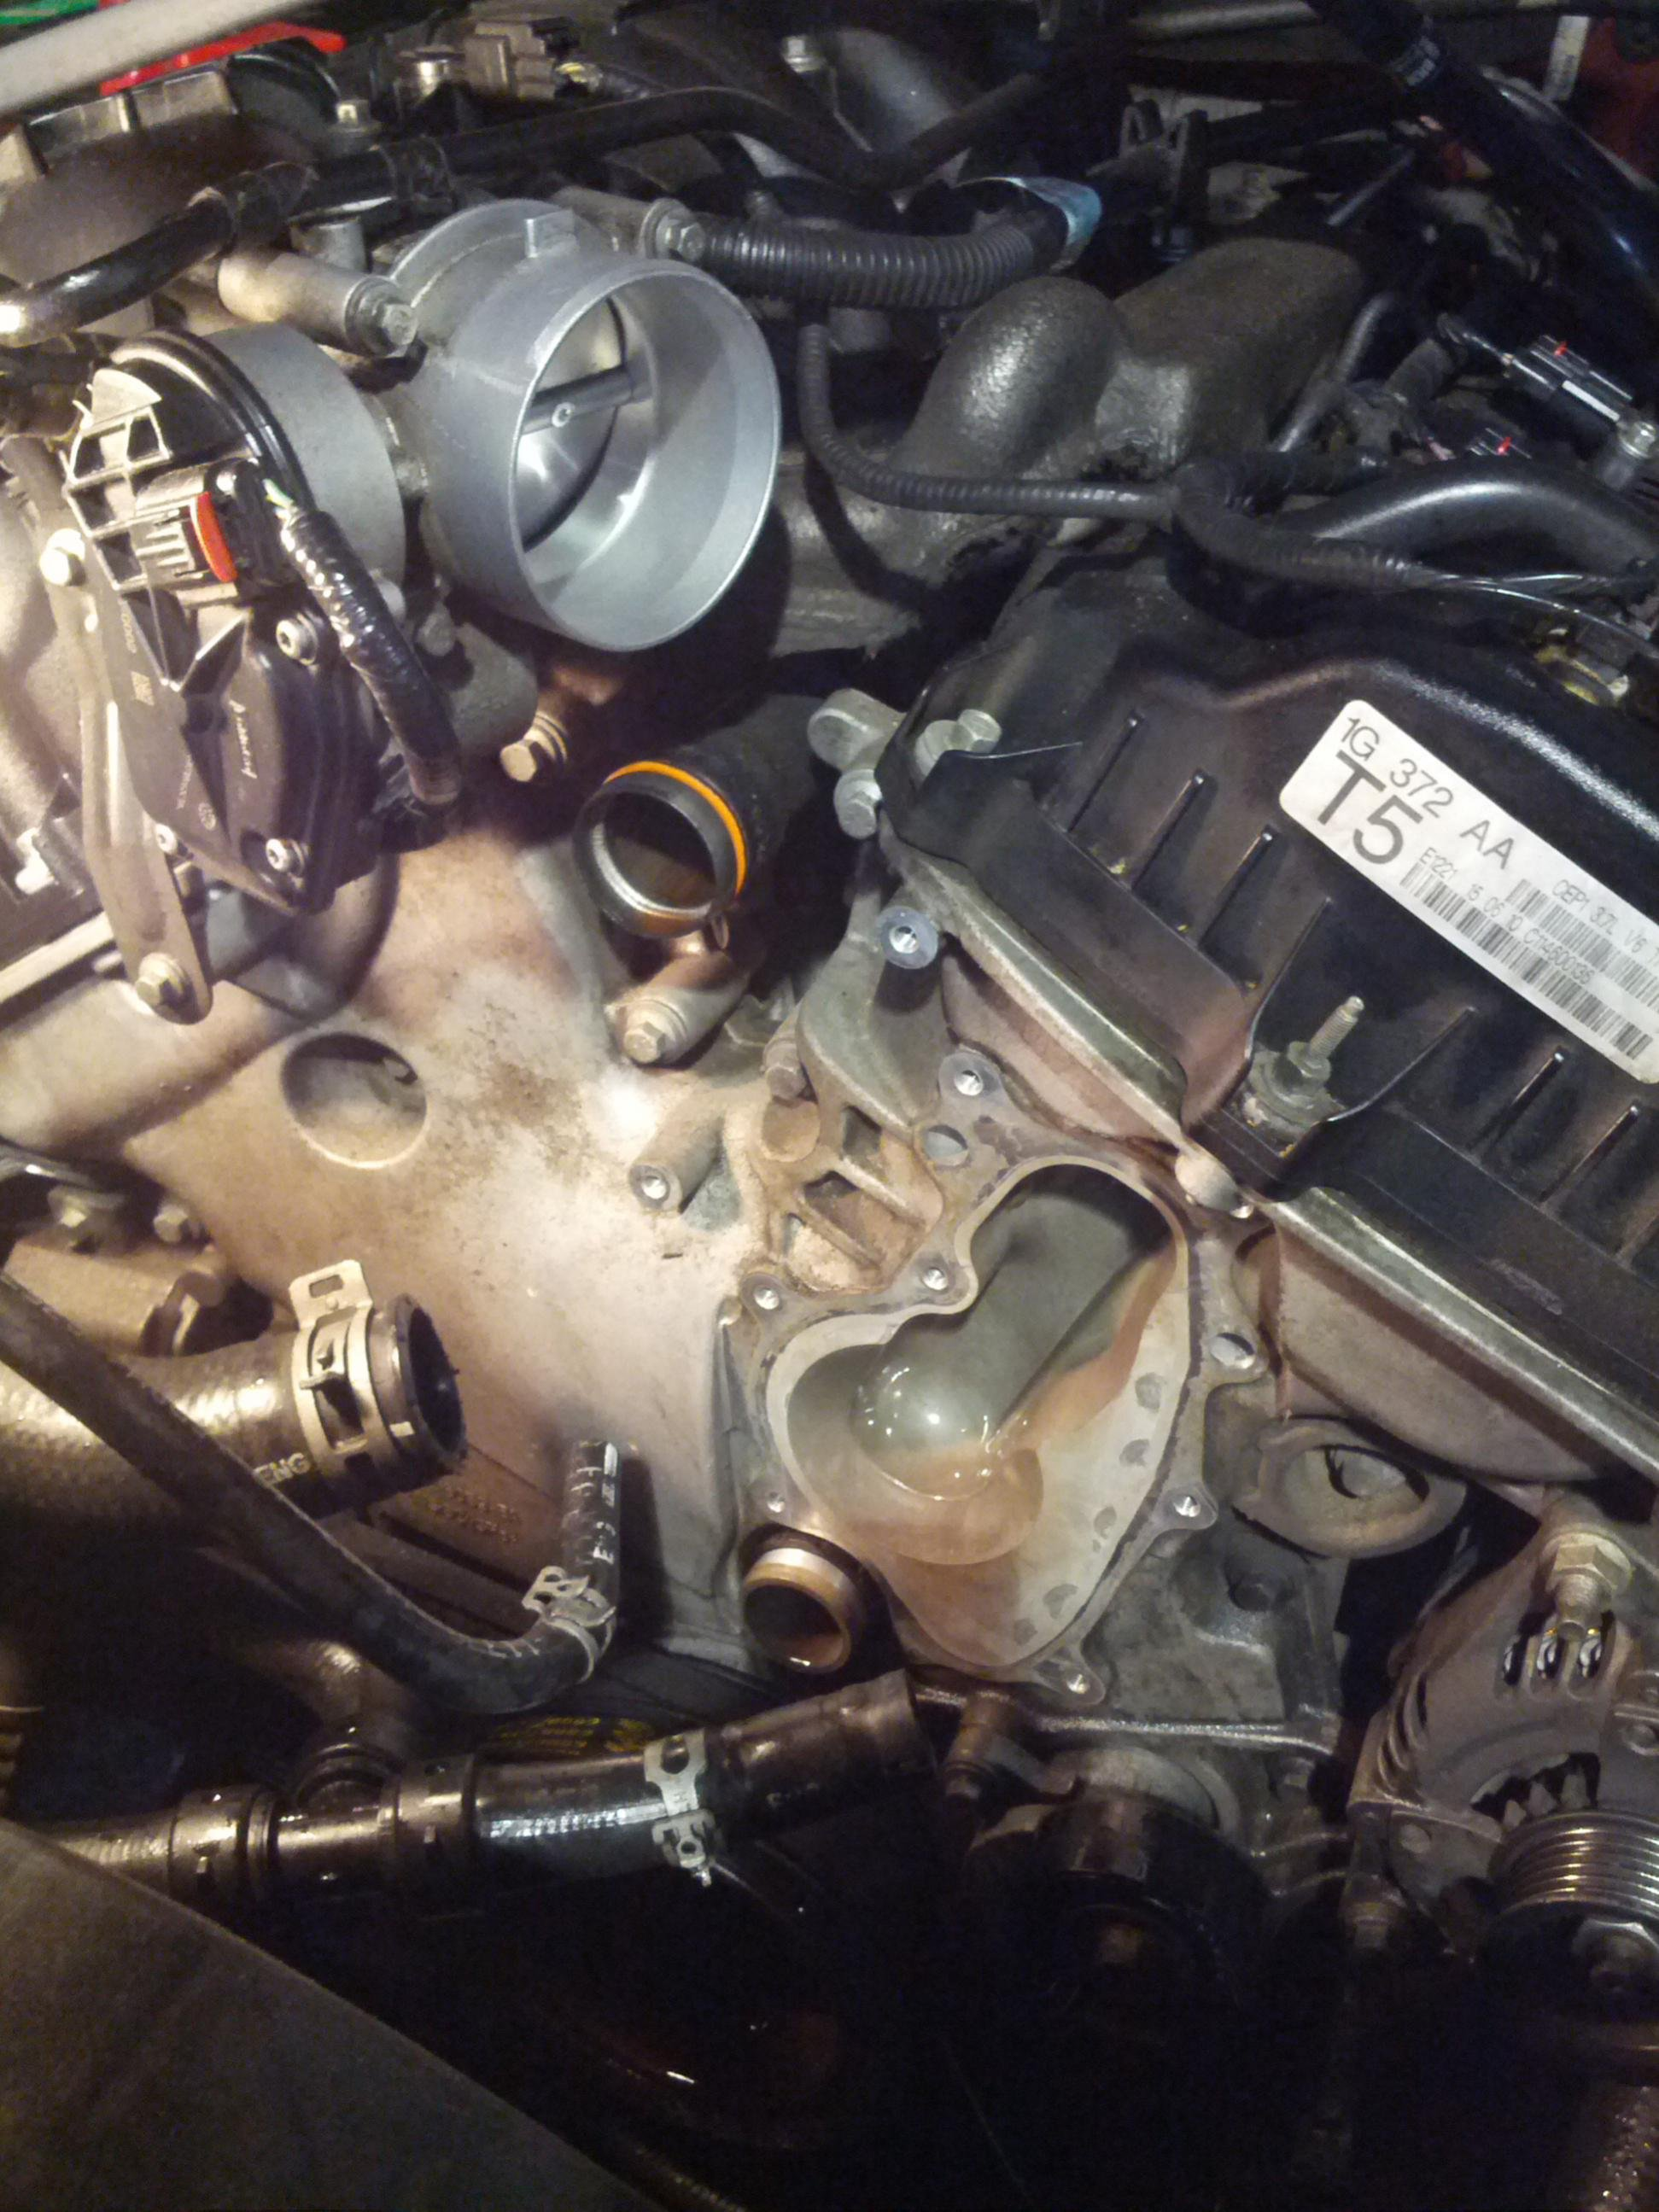 Water Pump Pulley >> 2011 Mustang 3.7L - Coolant Leak by pulley. - Page 2 ...